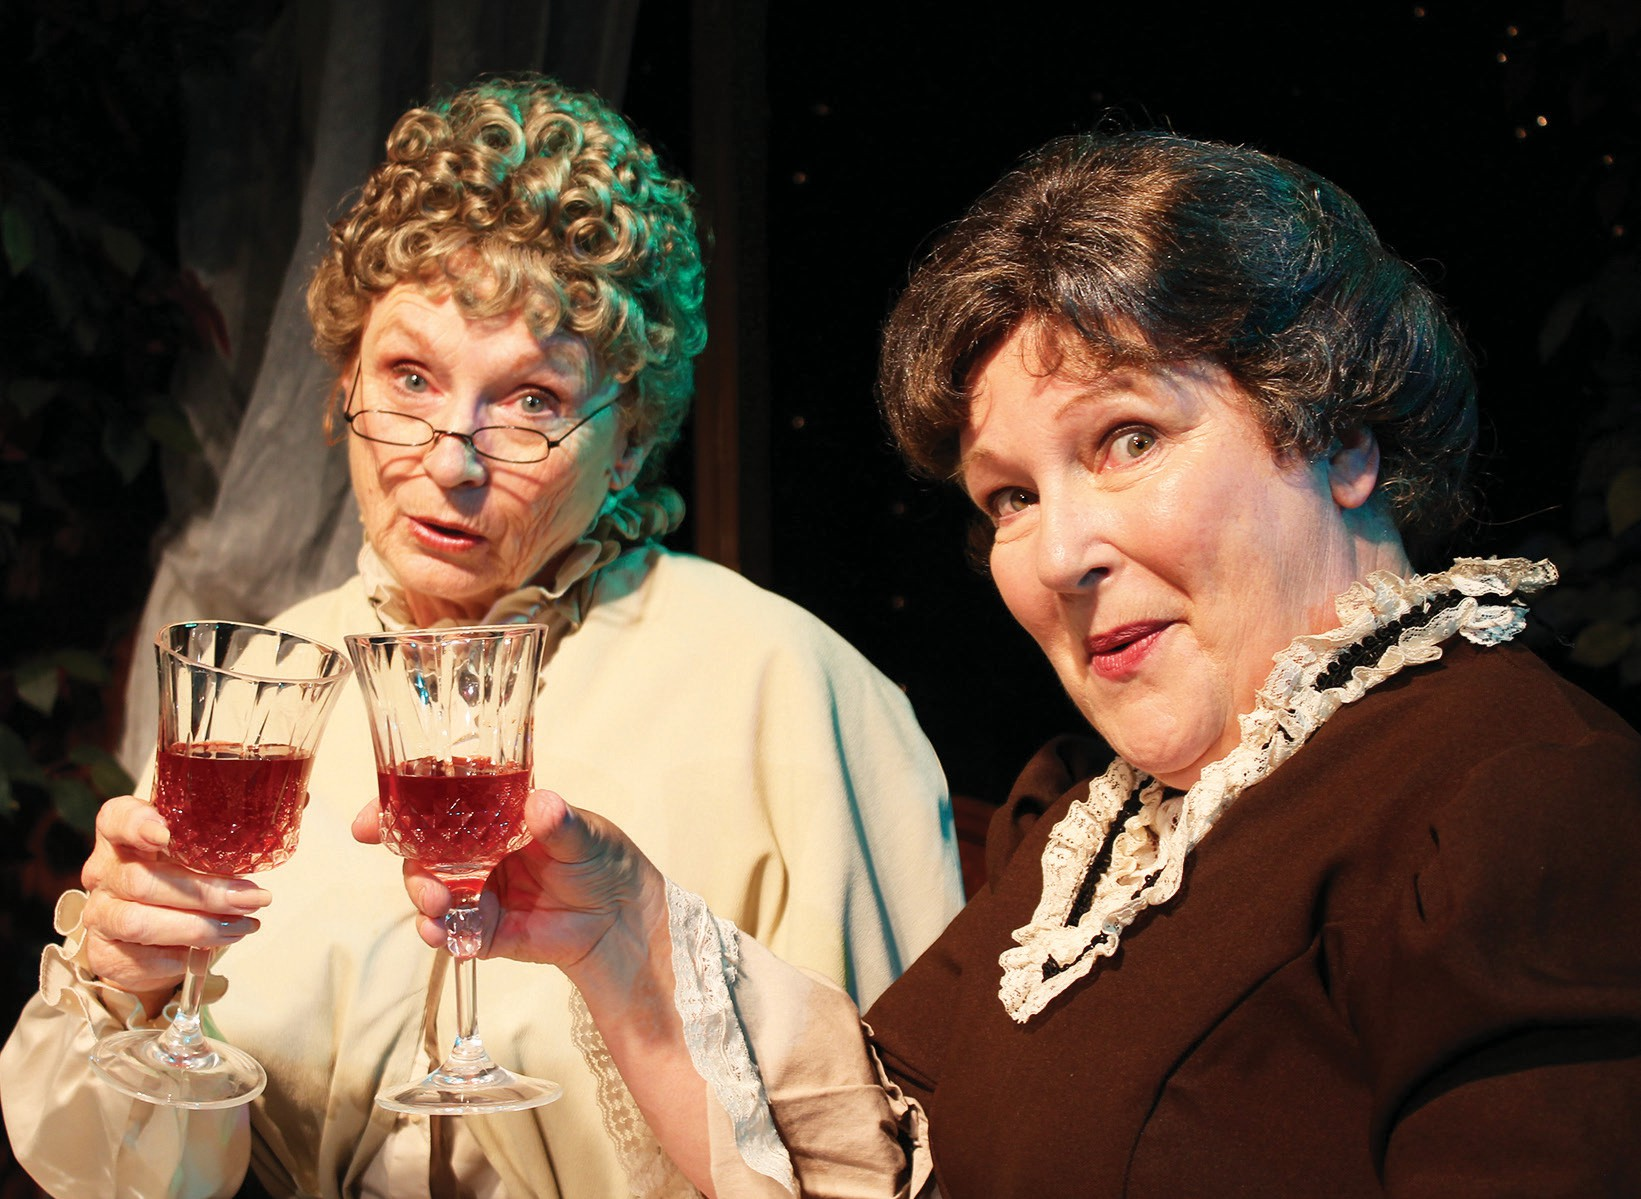 Arsenic and Old Lace, a laugh-a-minute screwball comedy will be playing at the Welk Resort Theater this August.